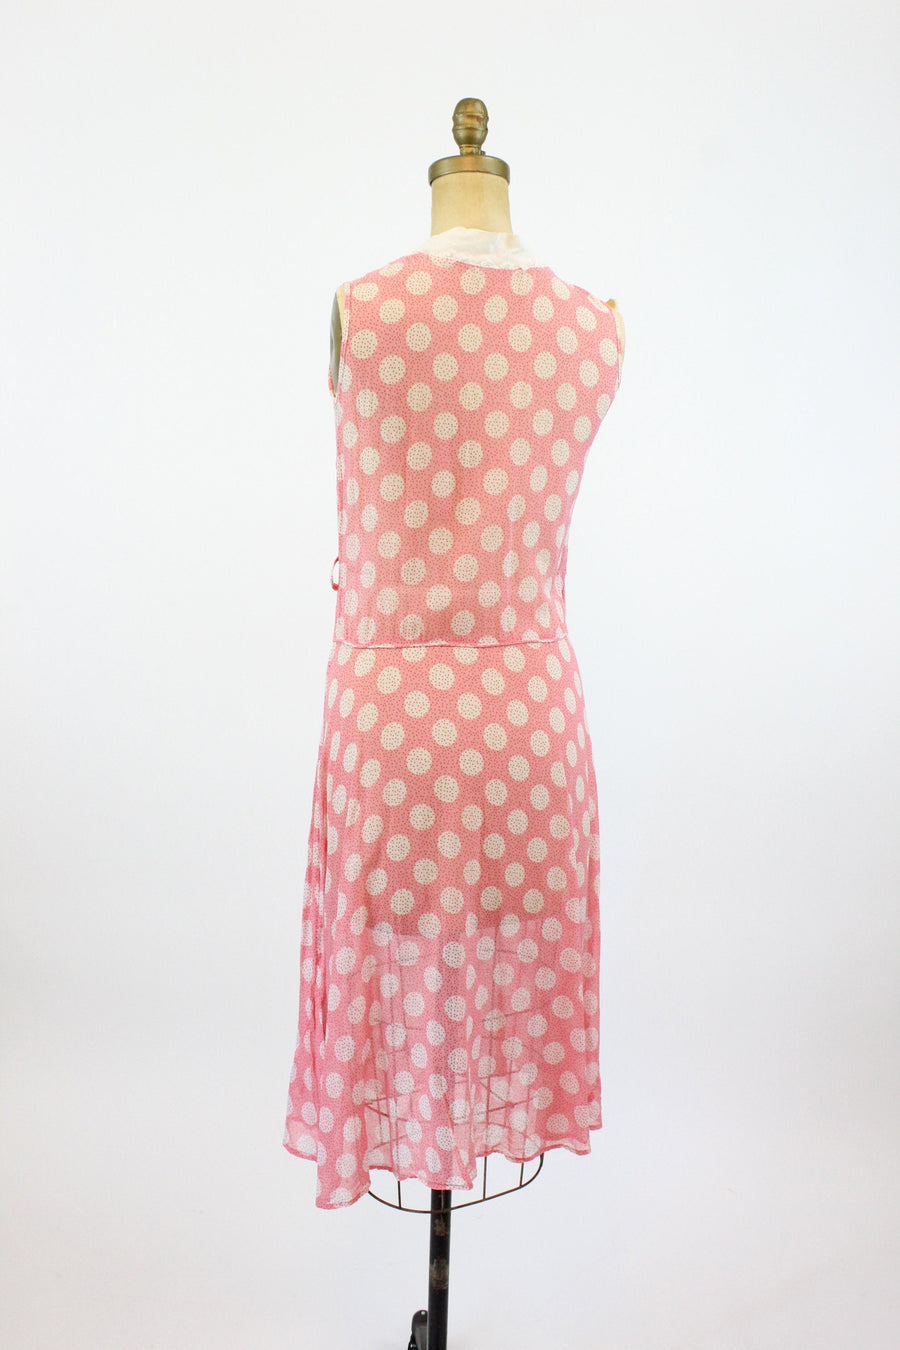 1920s cotton bow dress xs small | vintage floral polka dot day dress